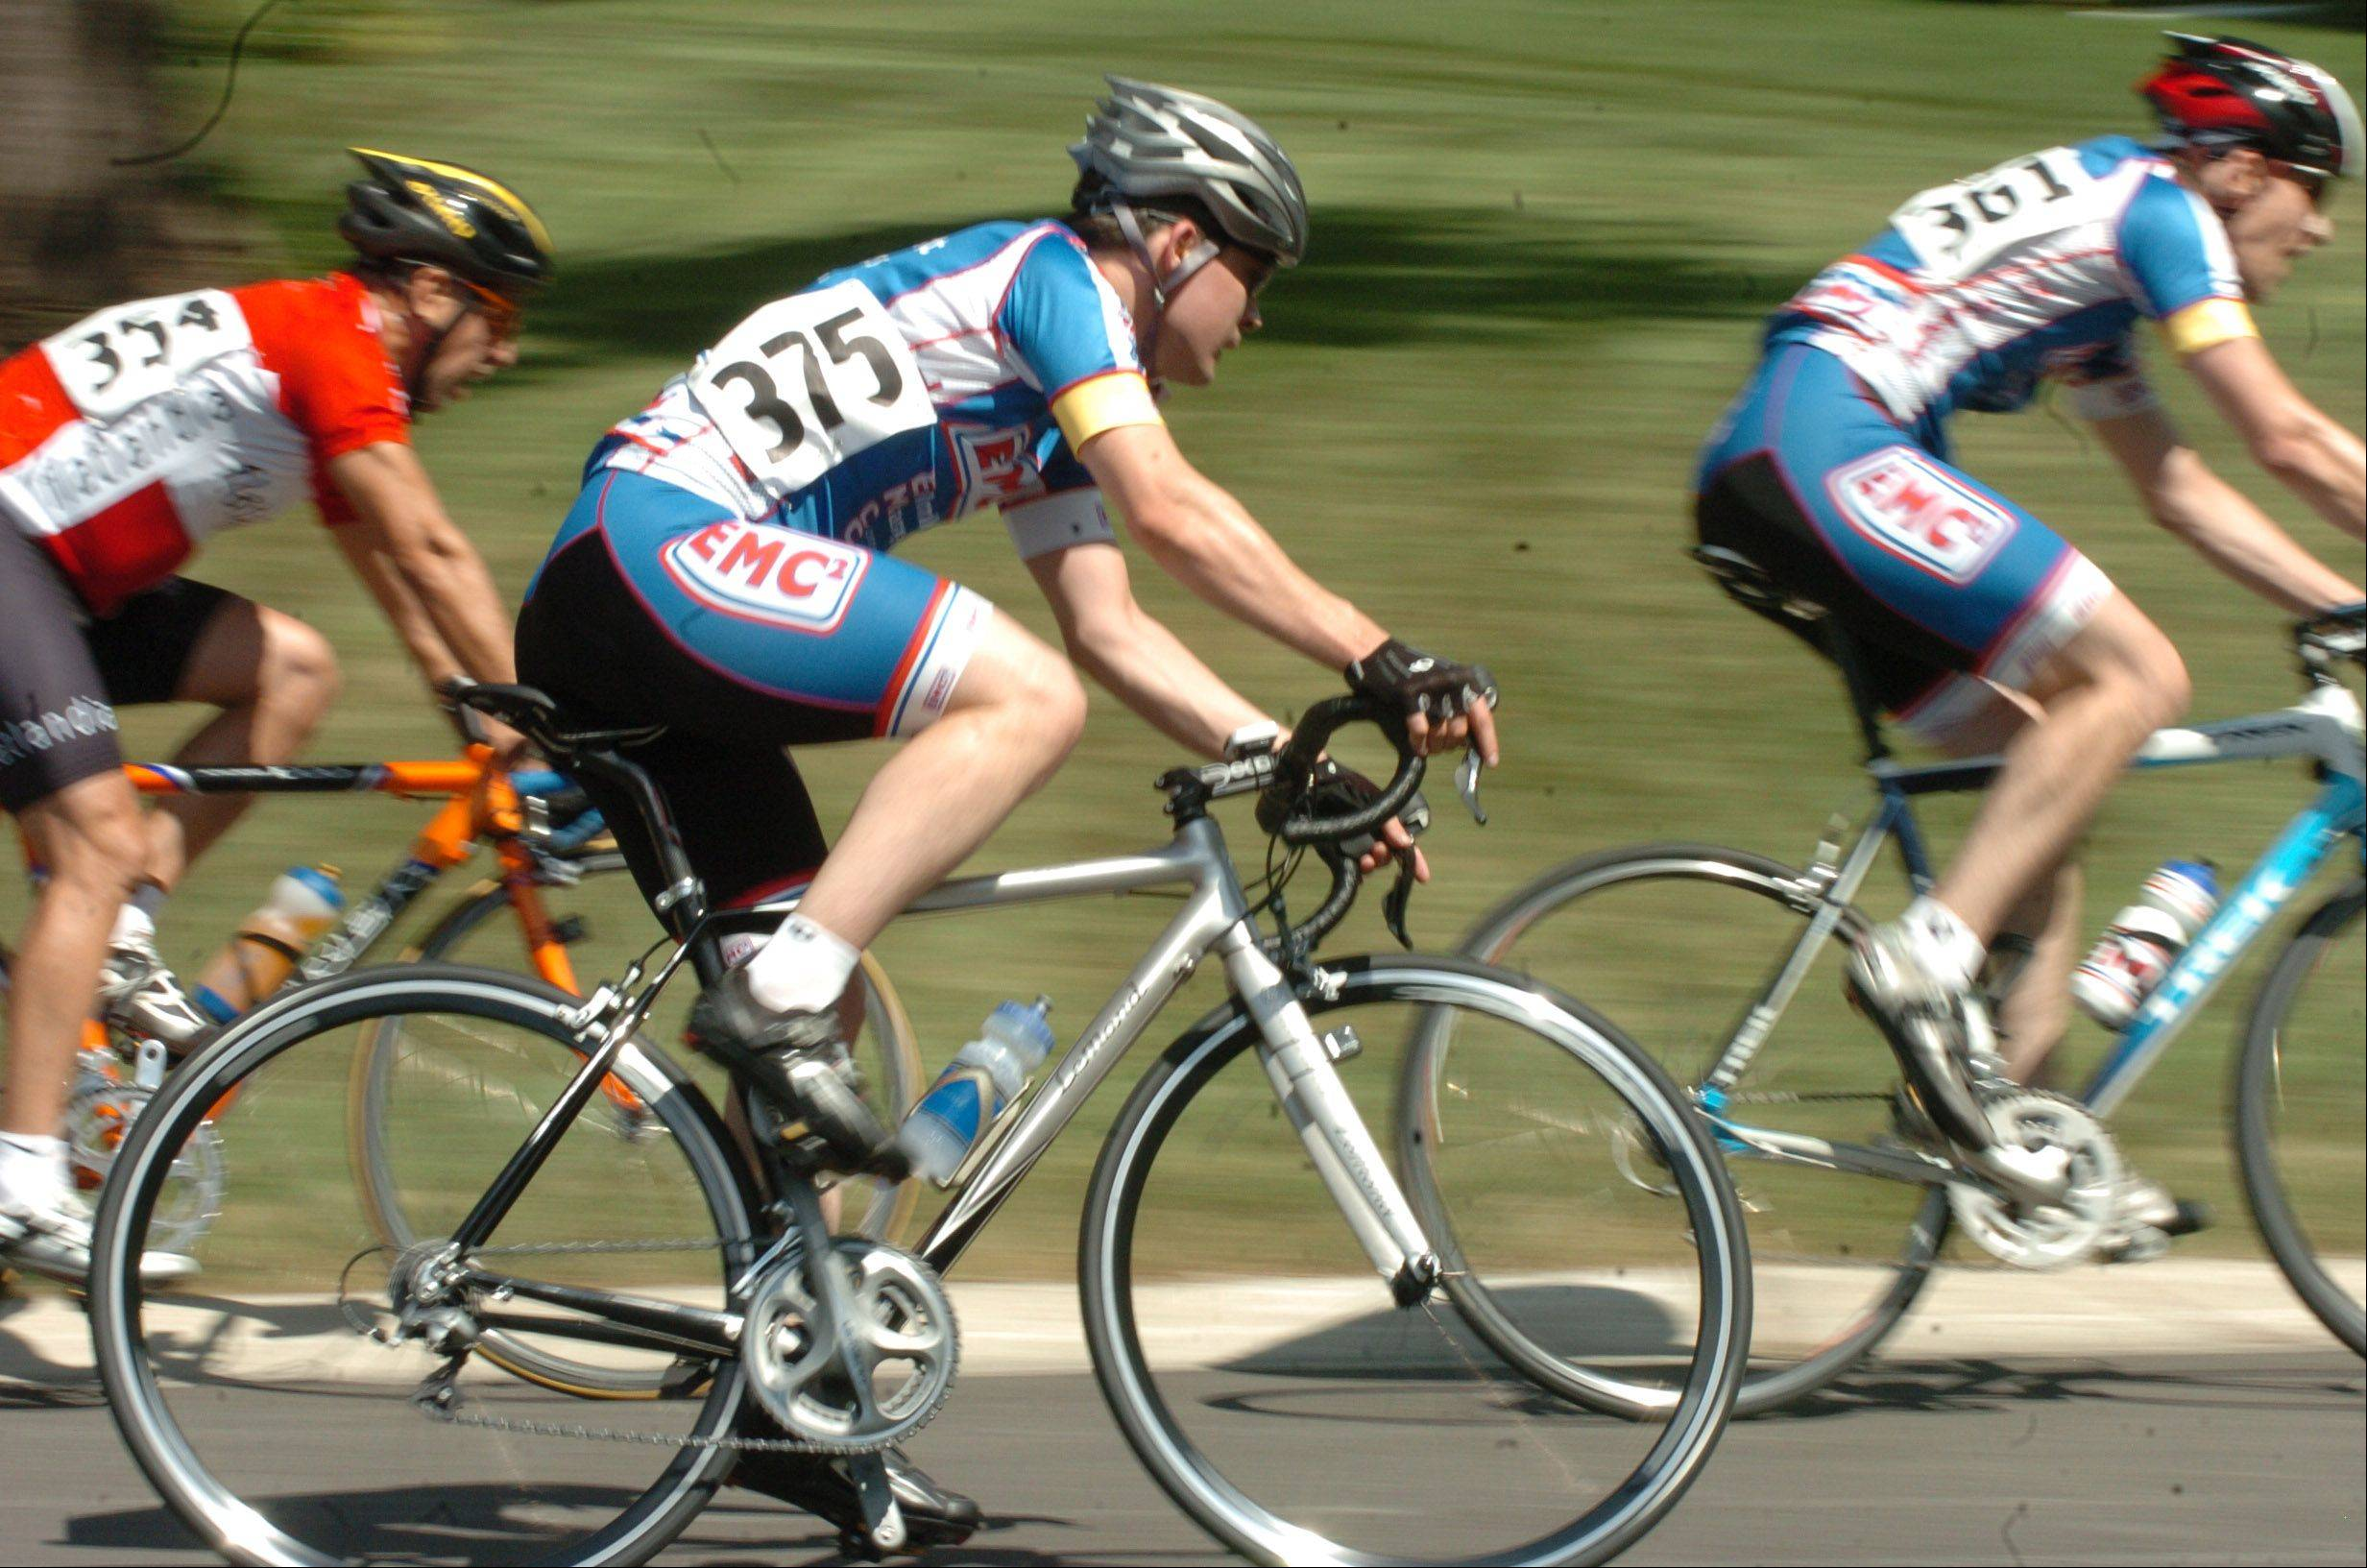 This weekend's Winfield Criterium is expected to draw more than 400 cyclists to the village.